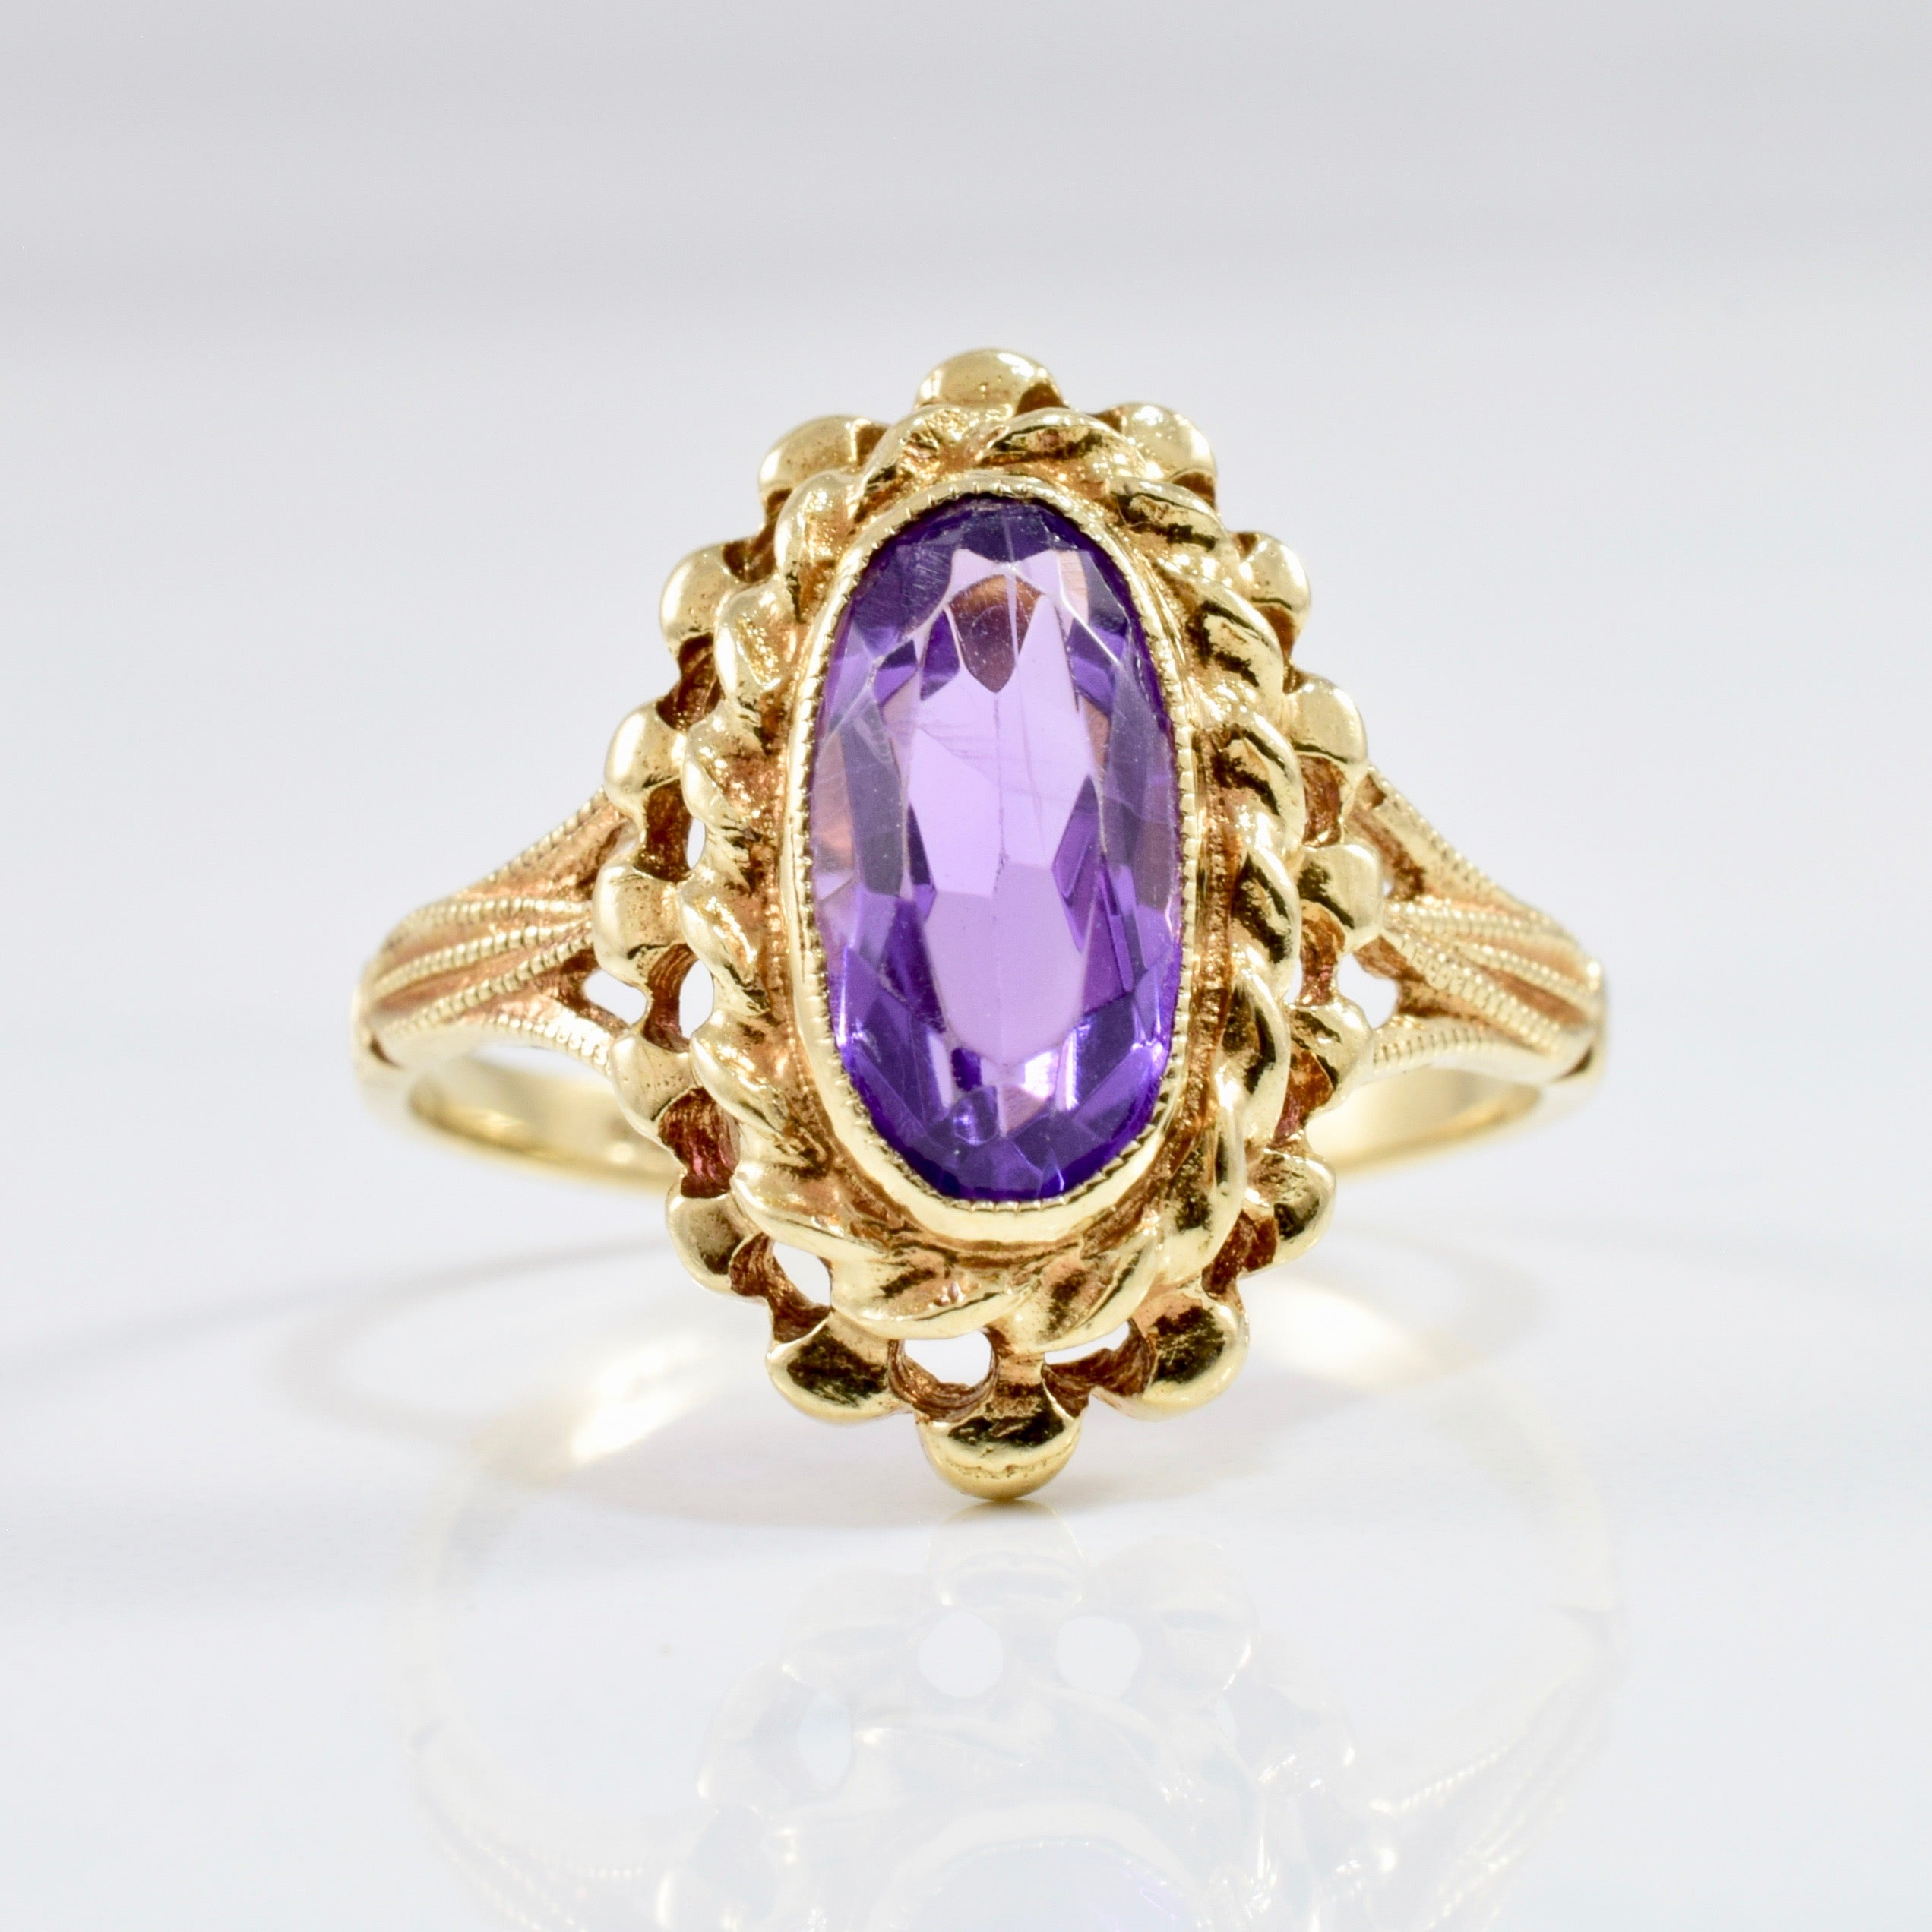 Bezel Set Amethyst Cocktail Ring | SZ 6.75 |